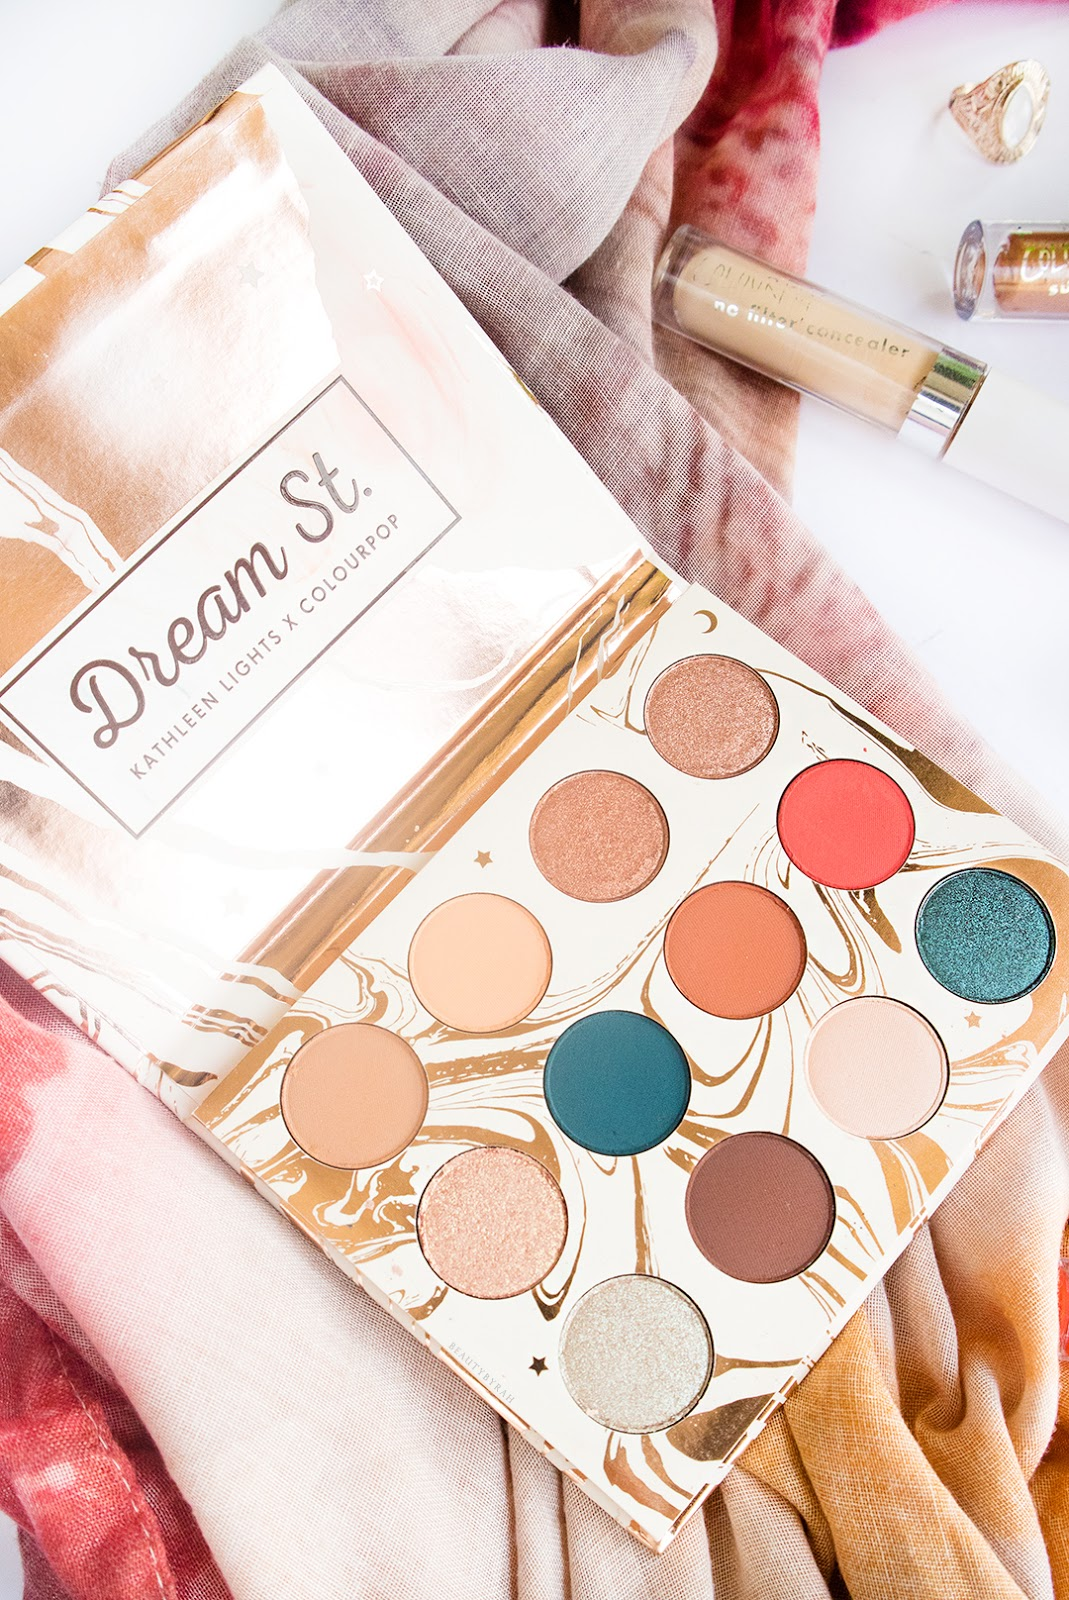 Colourpop Dream St Eyeshadow Palette Review and swatches